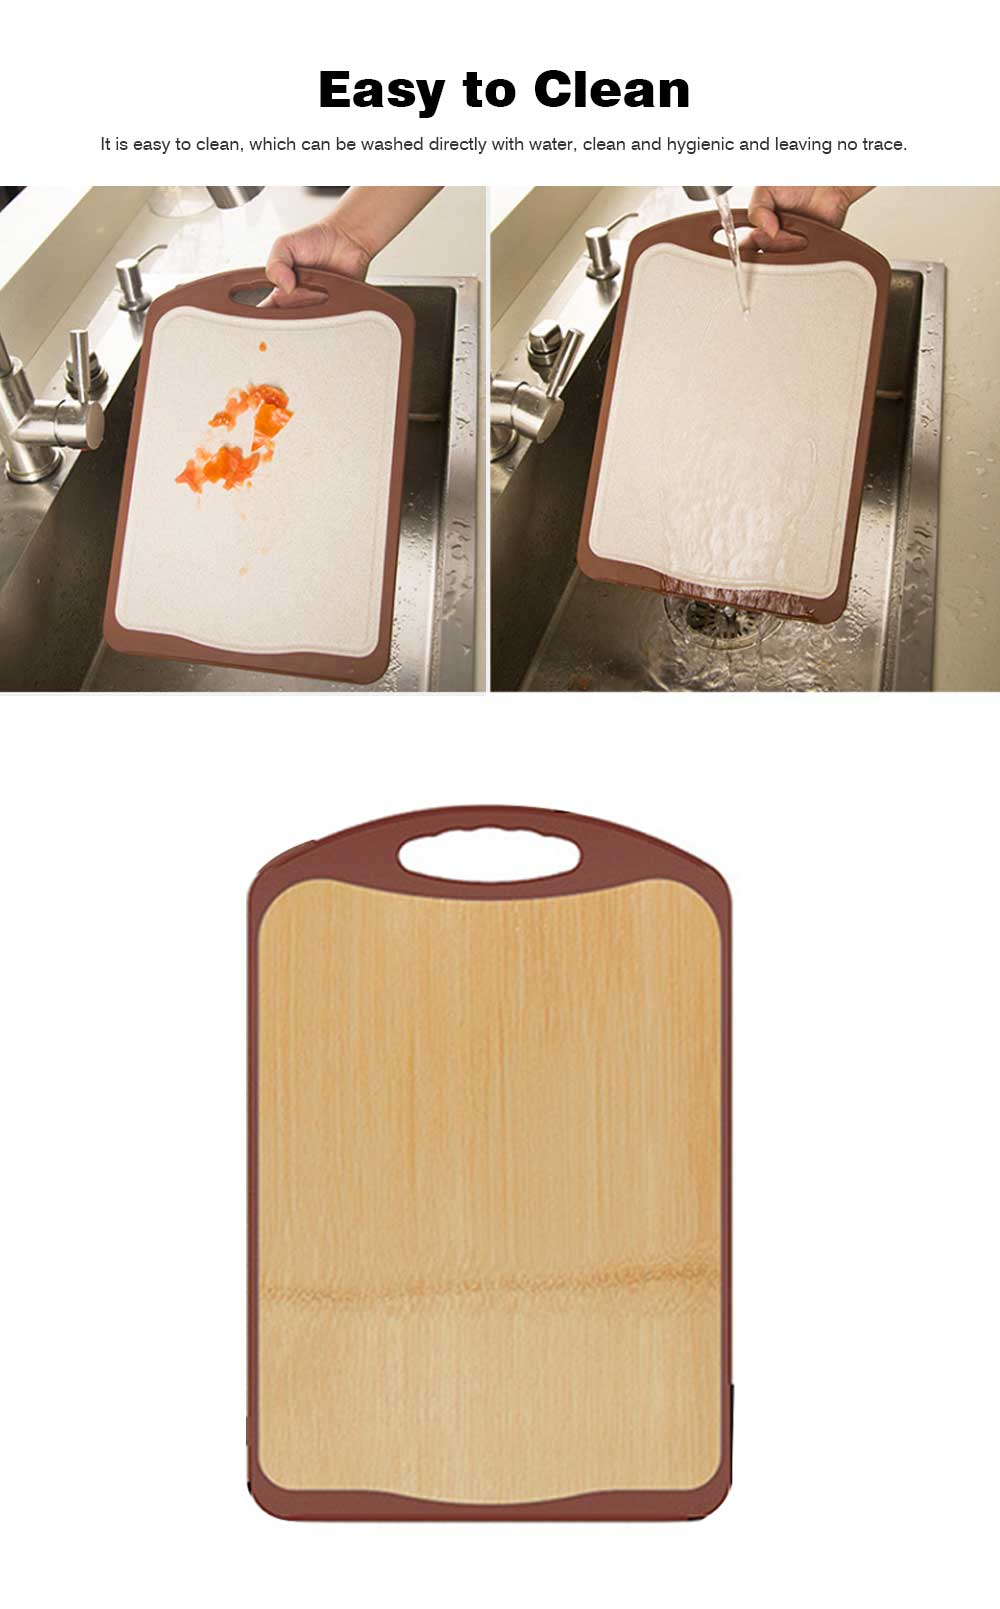 Whole Bamboo Fiber Composite Cutting Board, Healthy Non-slip Cutting Board for Cutting Cooked Food, Vegetables, Fruits 1